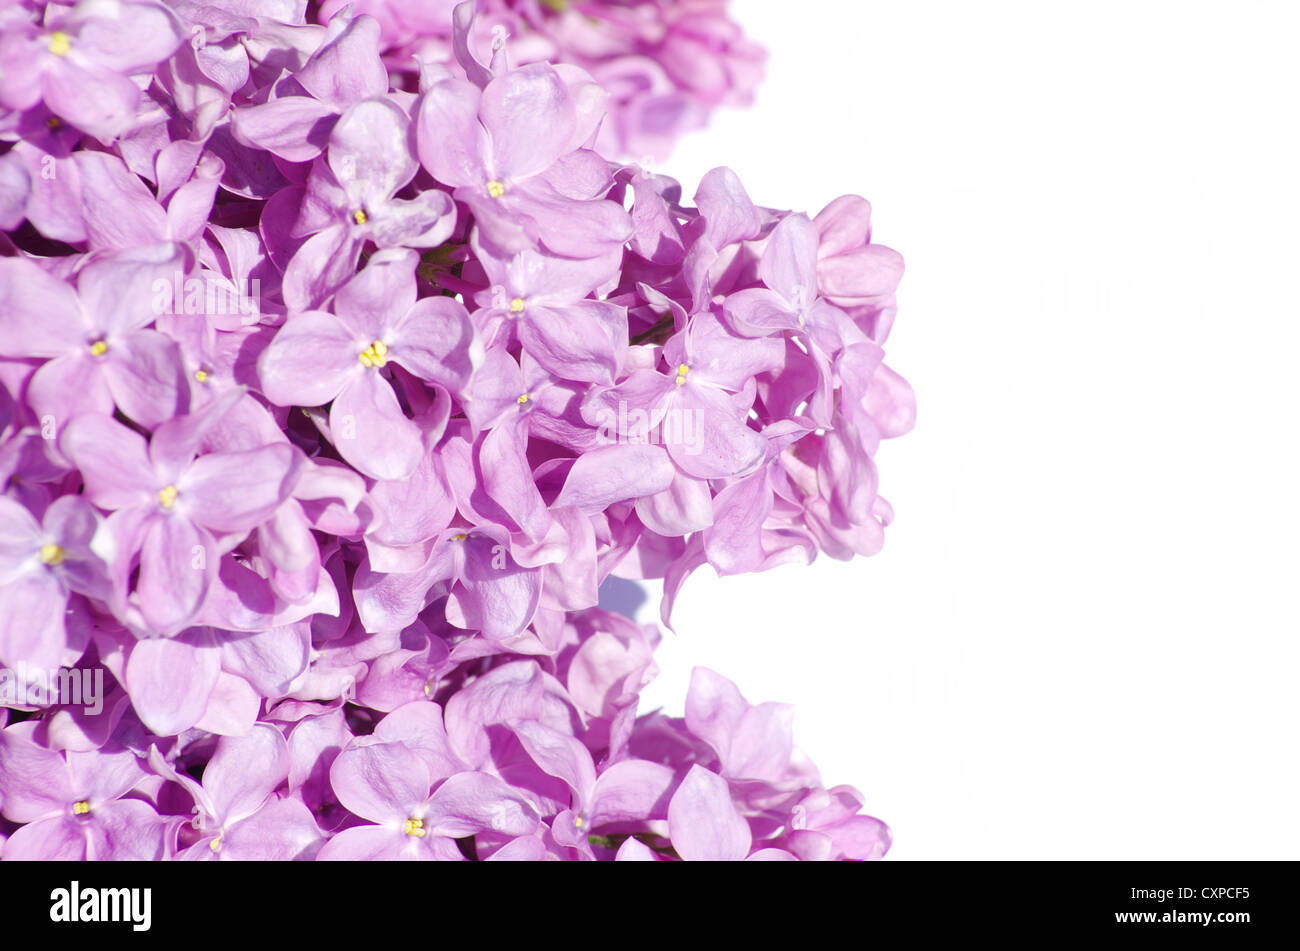 lilac flower isolated on white background - Stock Image